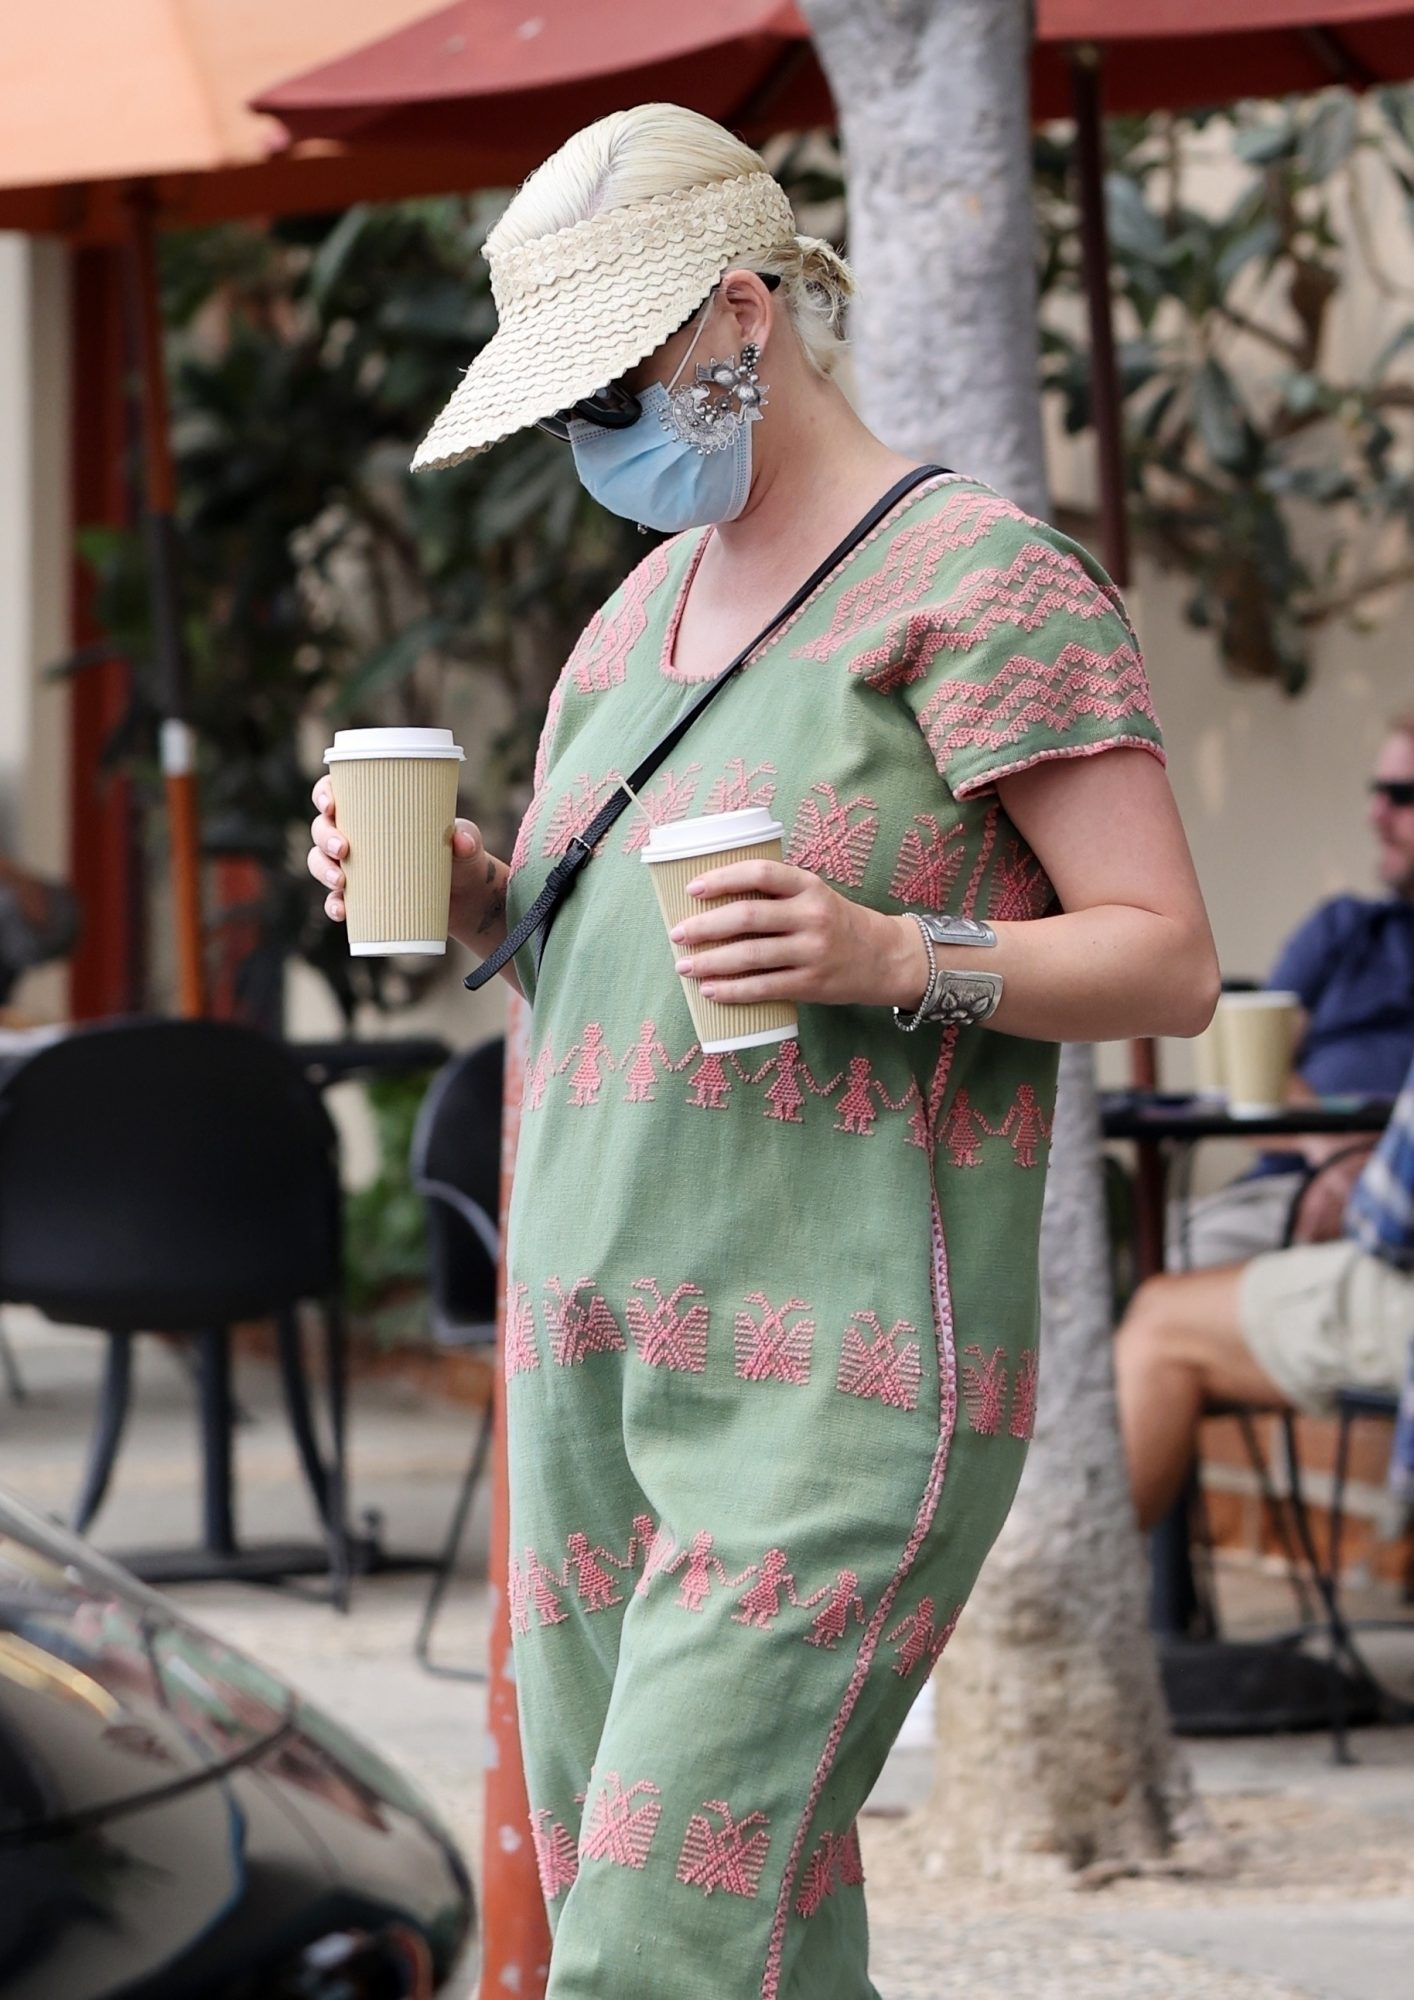 Katy Perry seen for the first time after giving birth to baby Daisy Dove Bloom as she picks up drinks and food and also picks up home goods from a local store